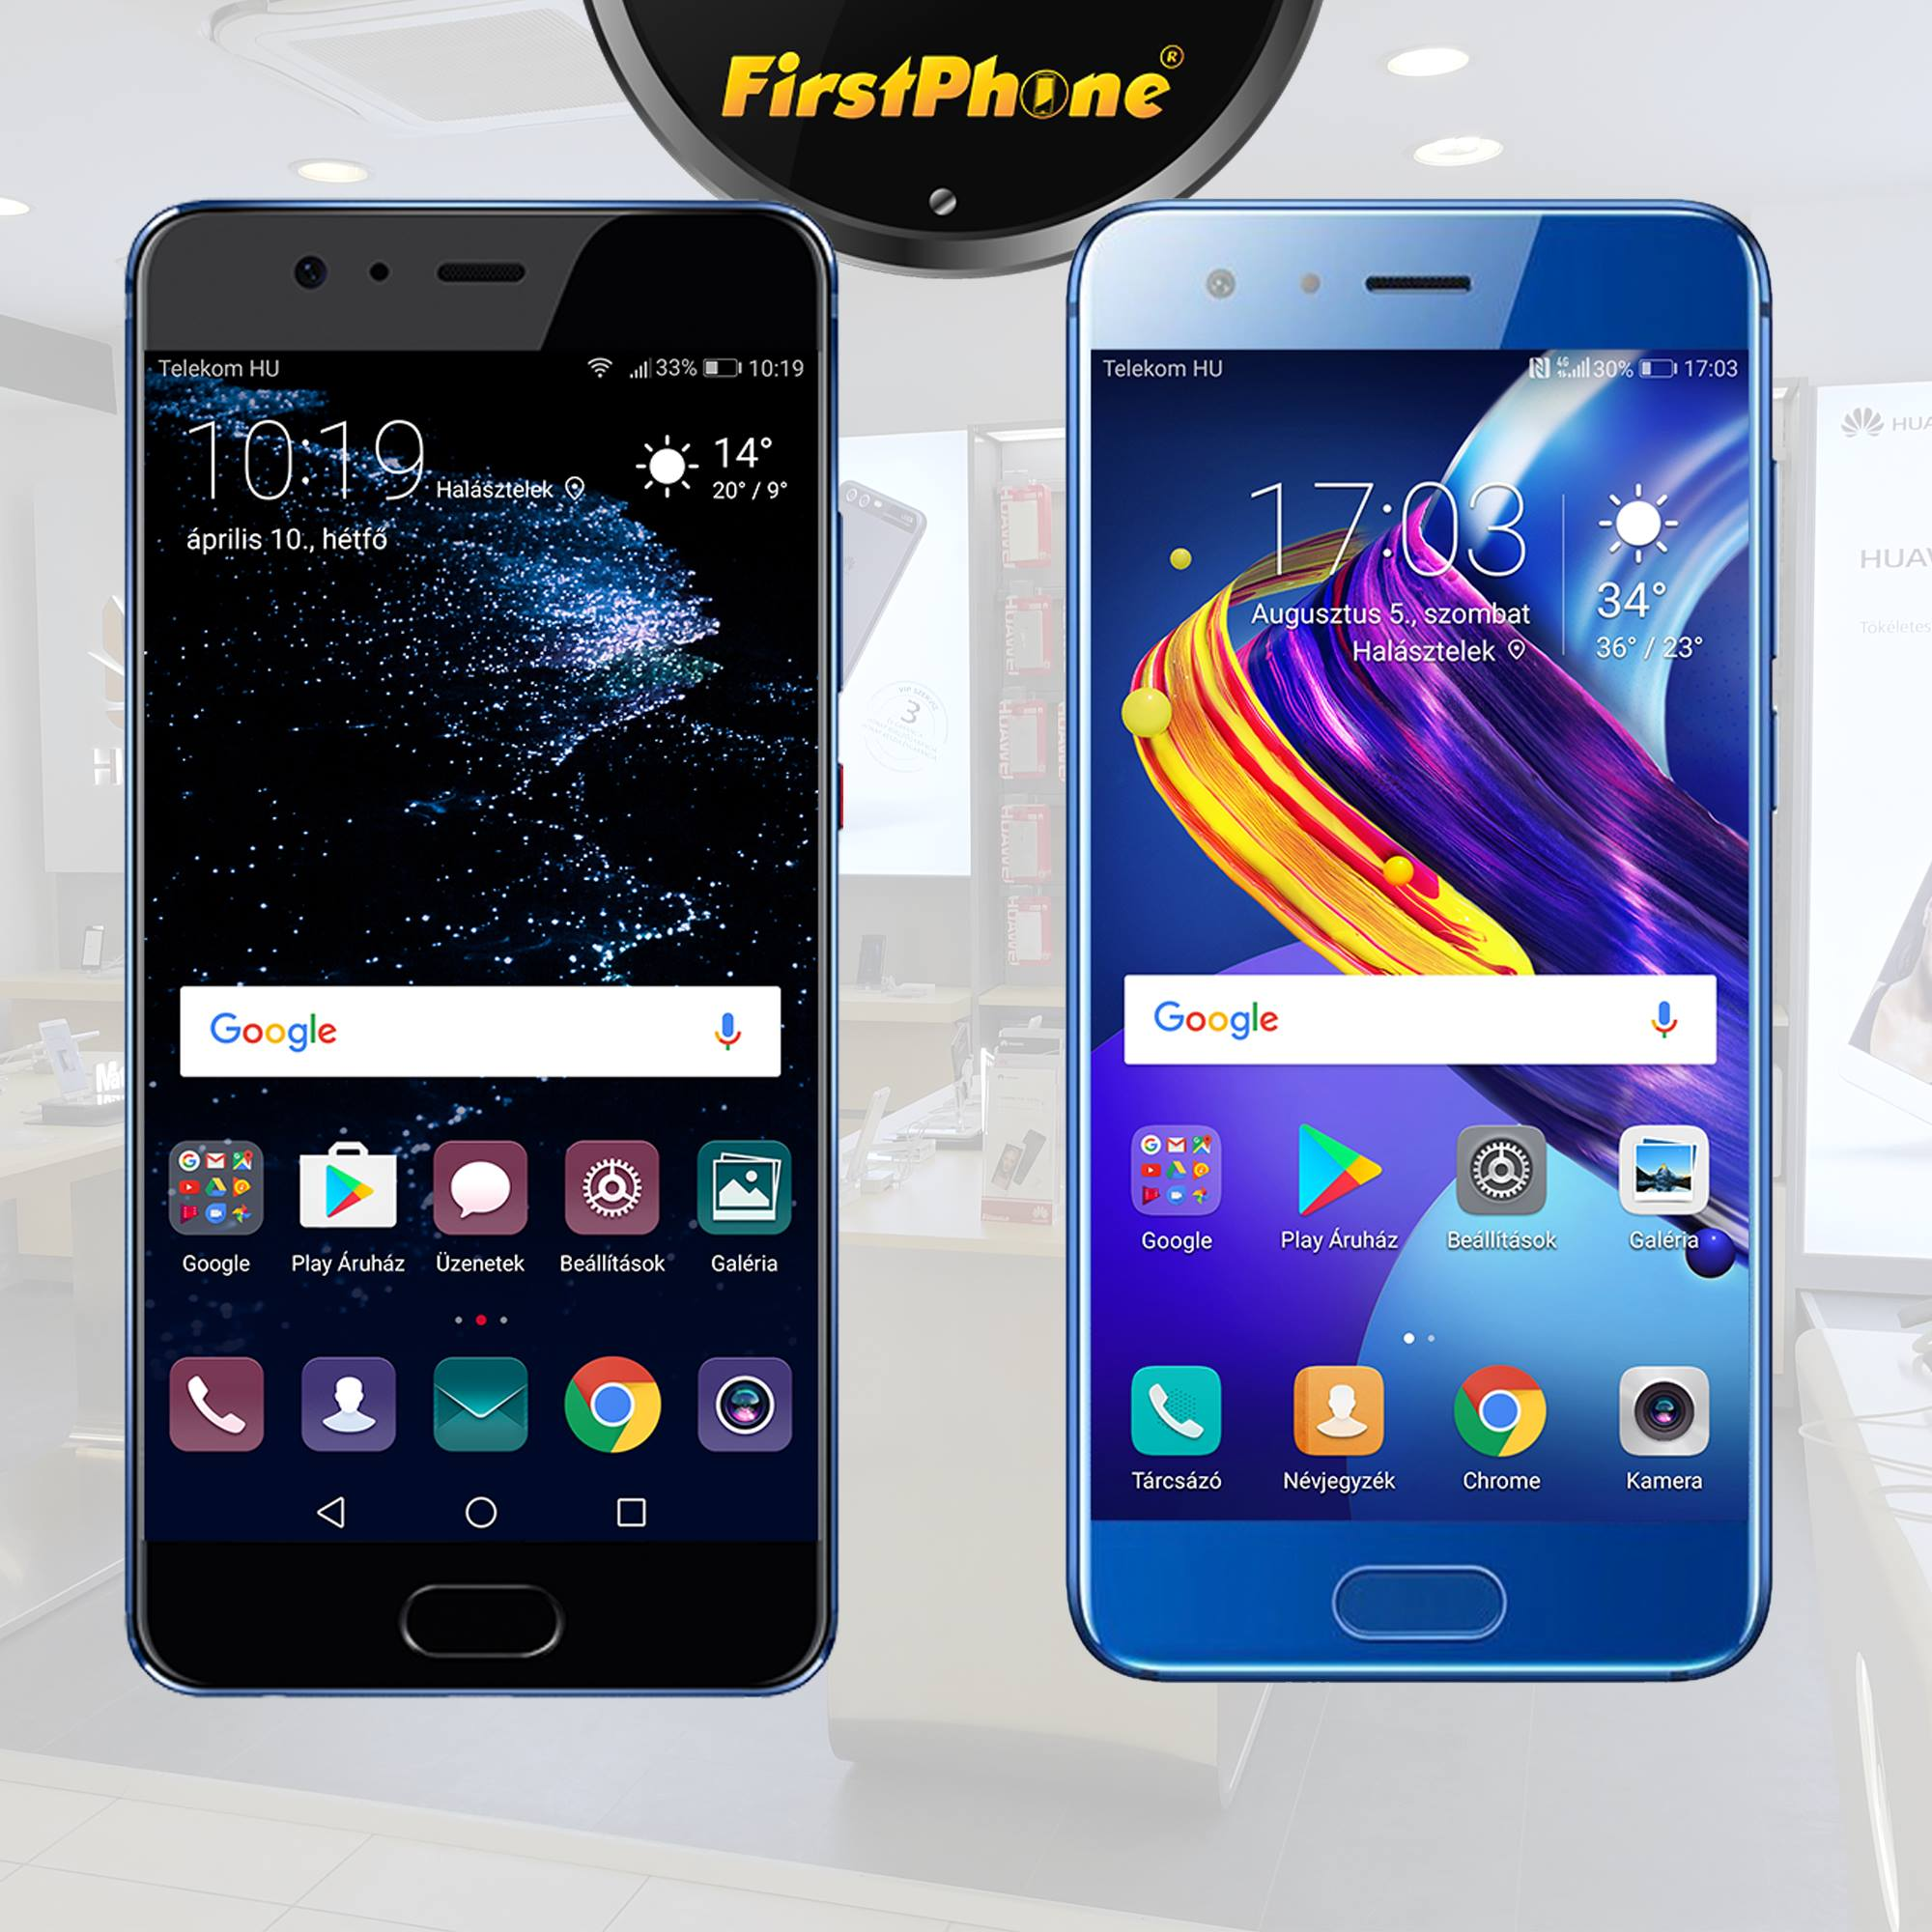 FirstPhone Huawei akciók